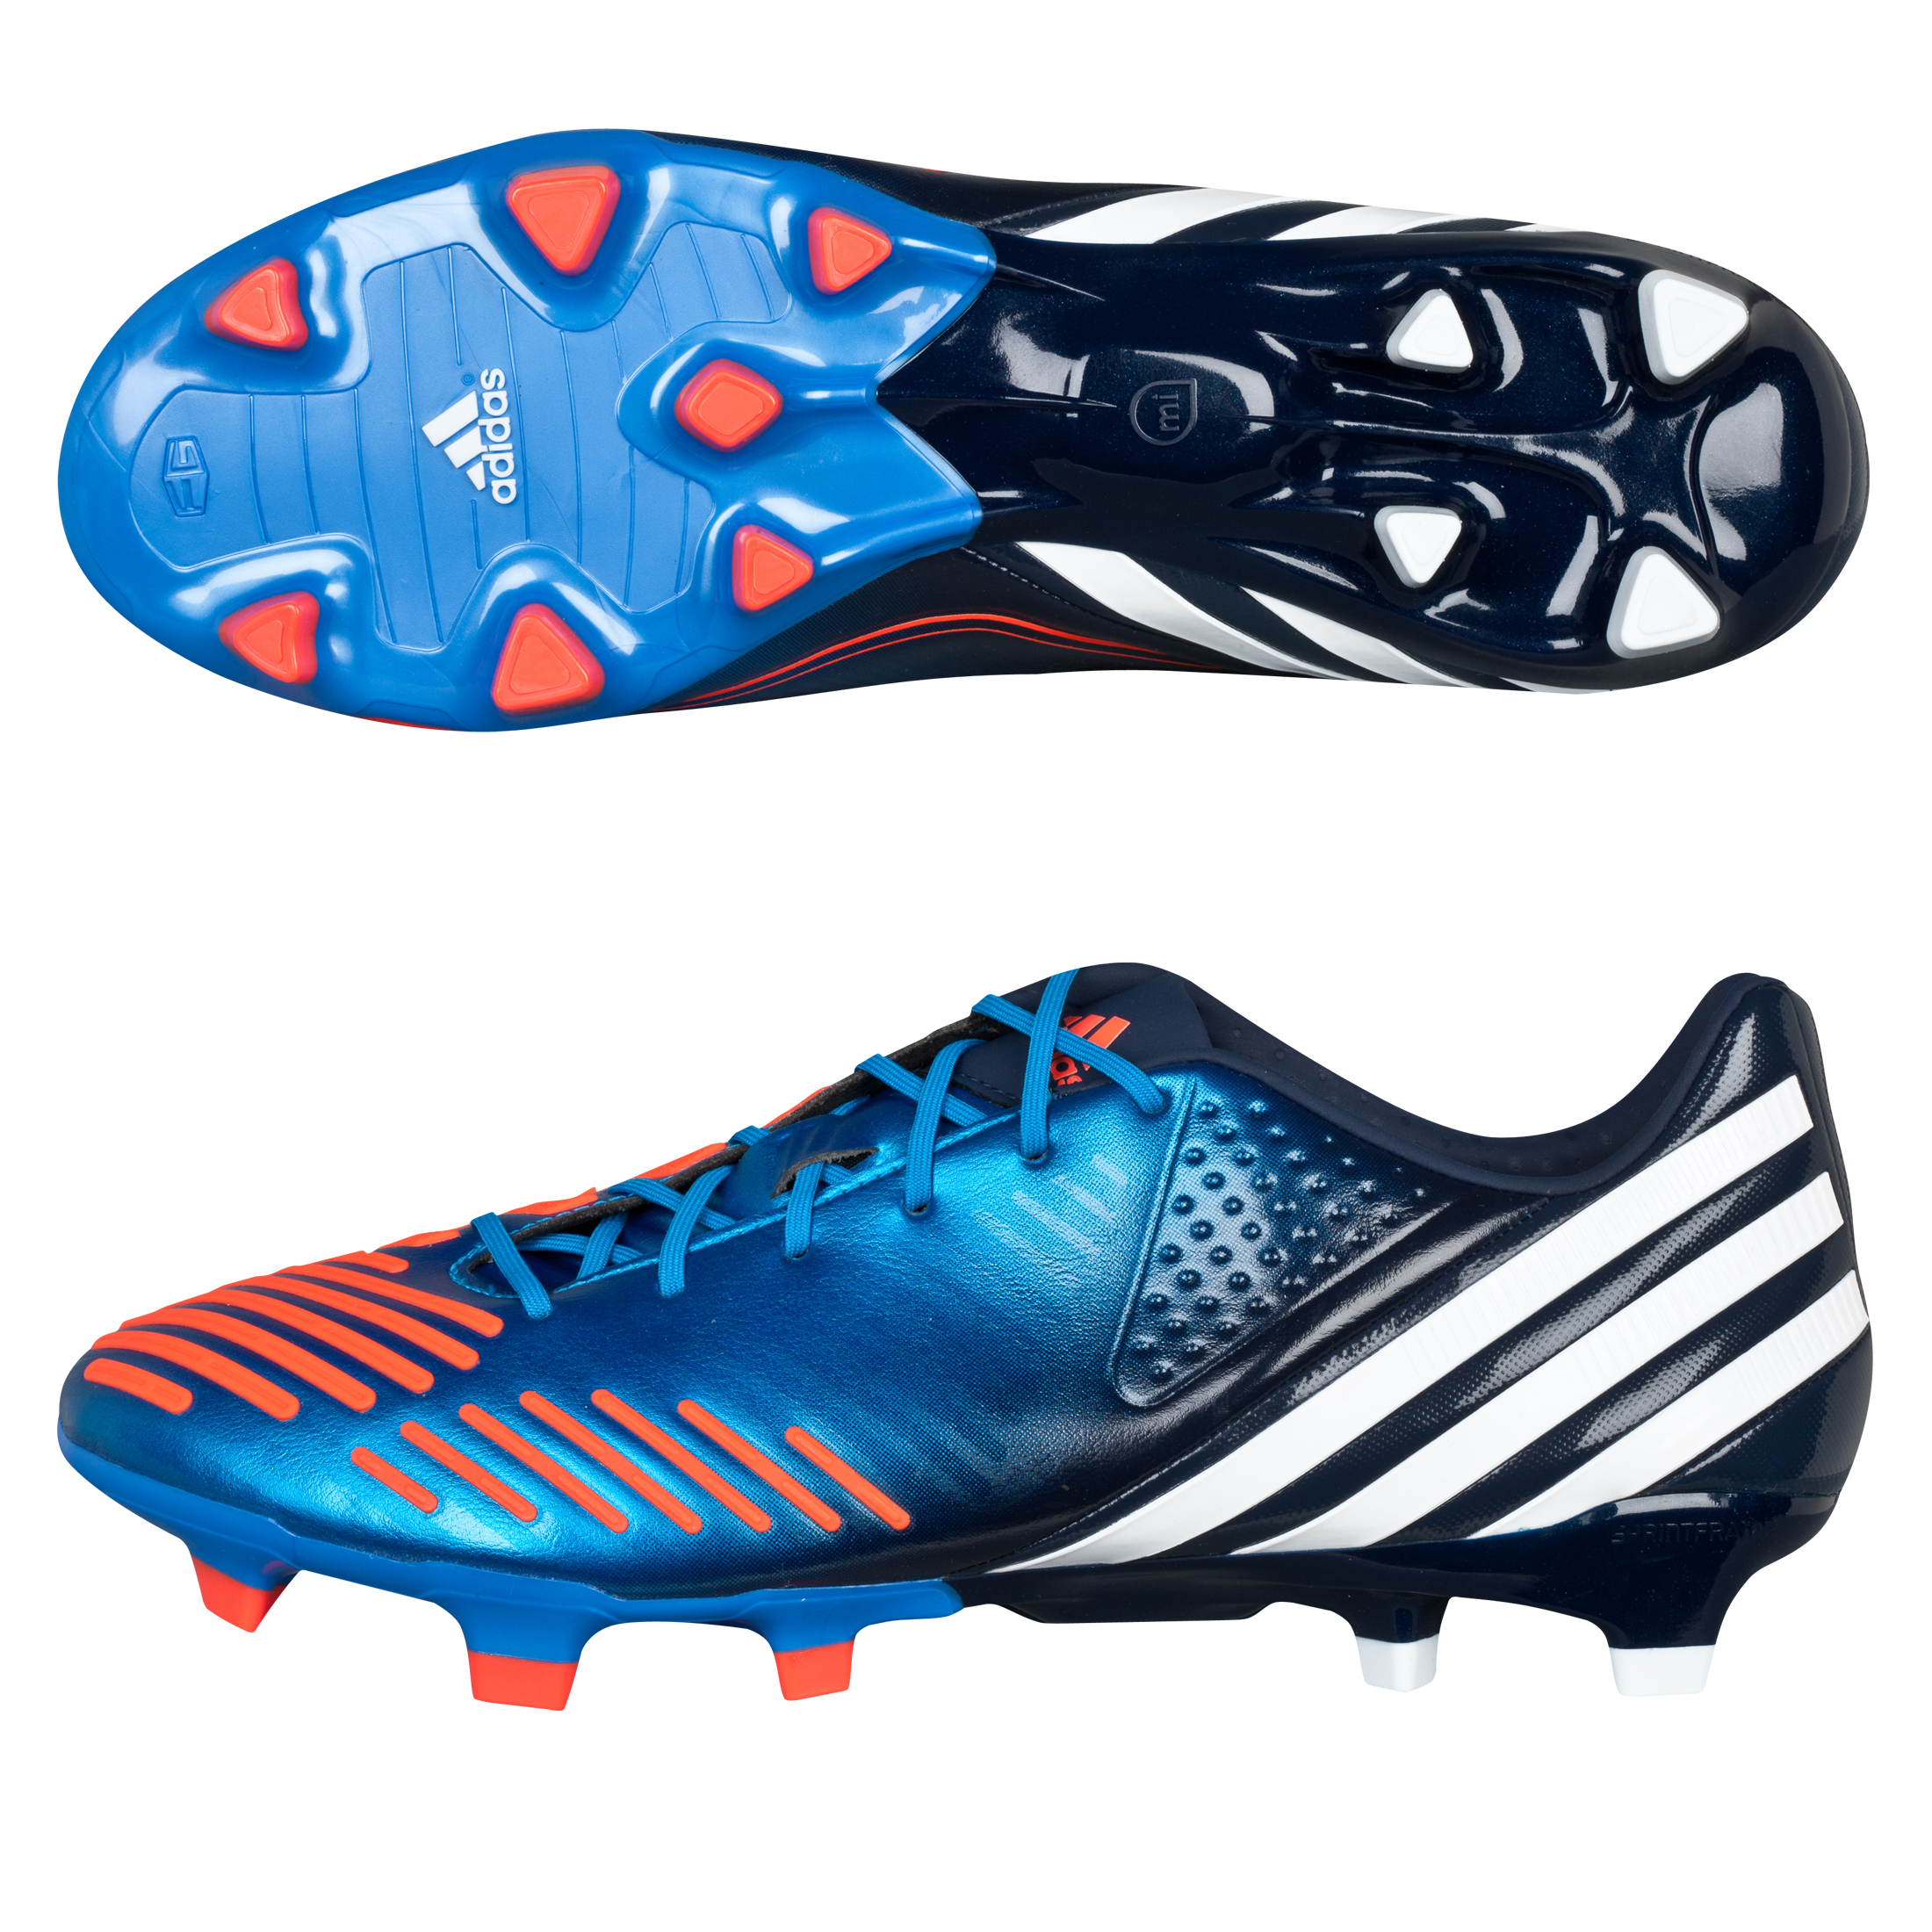 Adidas Predator LZ TRX Firm Ground Football Boots - Bright Blue/White/Infrared